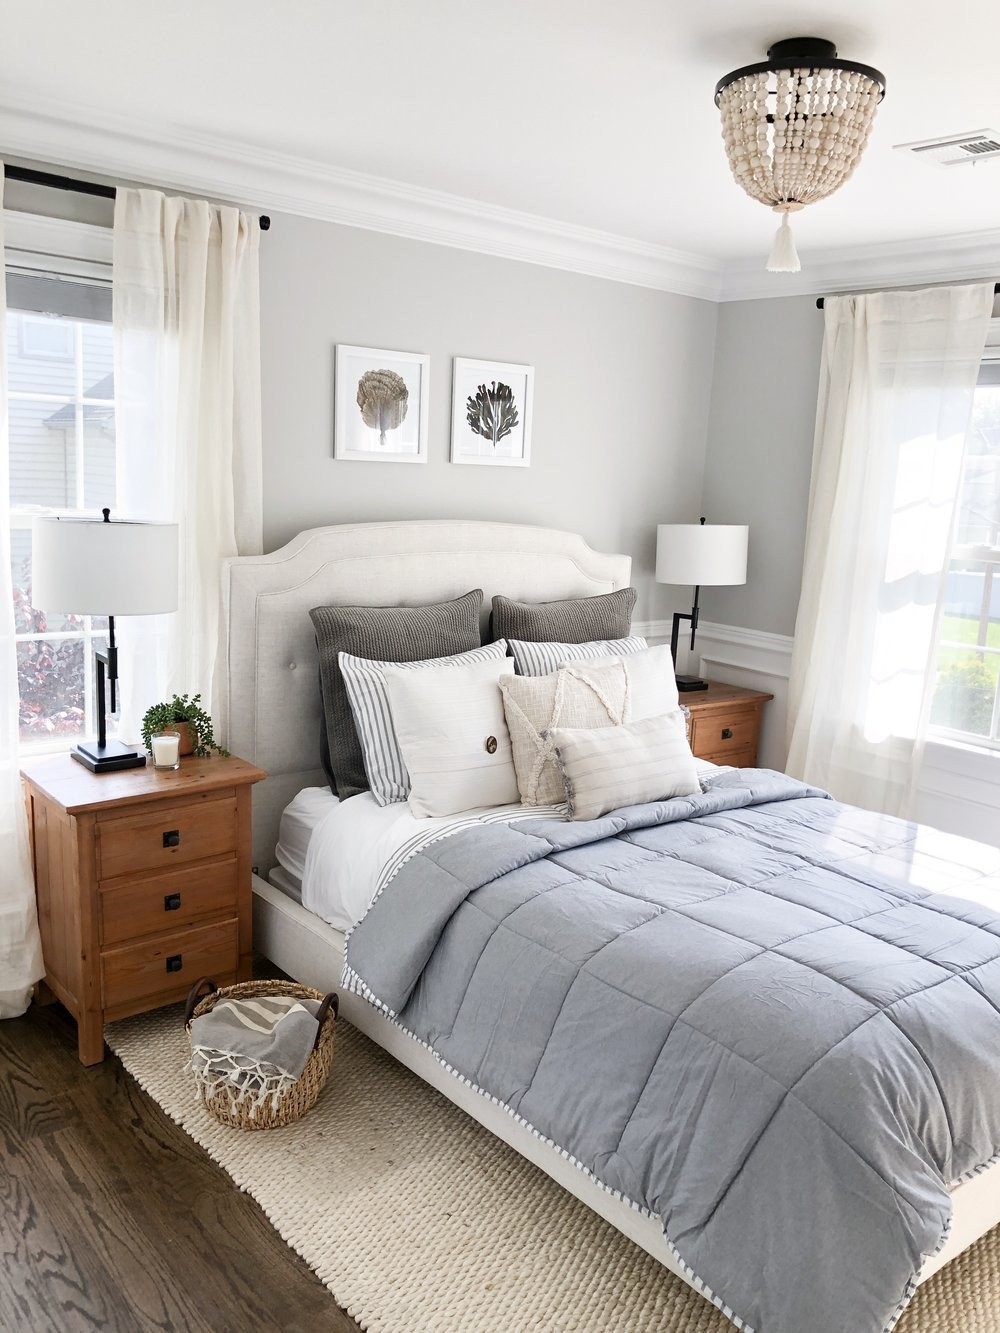 Walmart Bedroom Set Queen Fresh Reveal Our Guest Room Makeover Courtesy Of Walmart — Girl